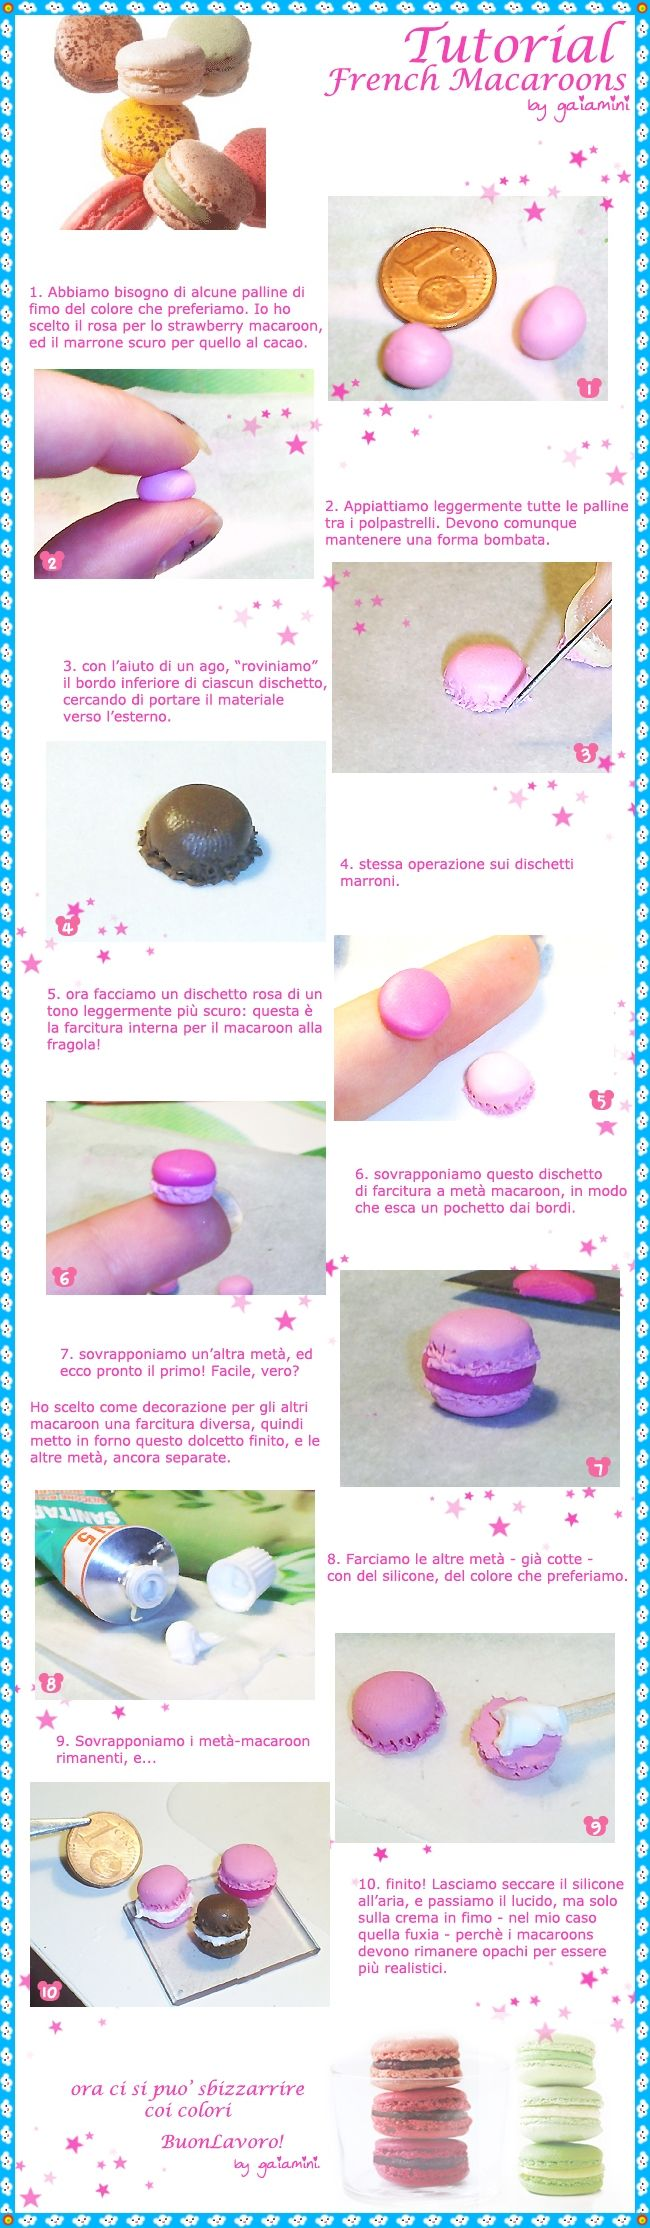 tutorial 3 - french macaroons by gaiamini.deviantart.com on @deviantART